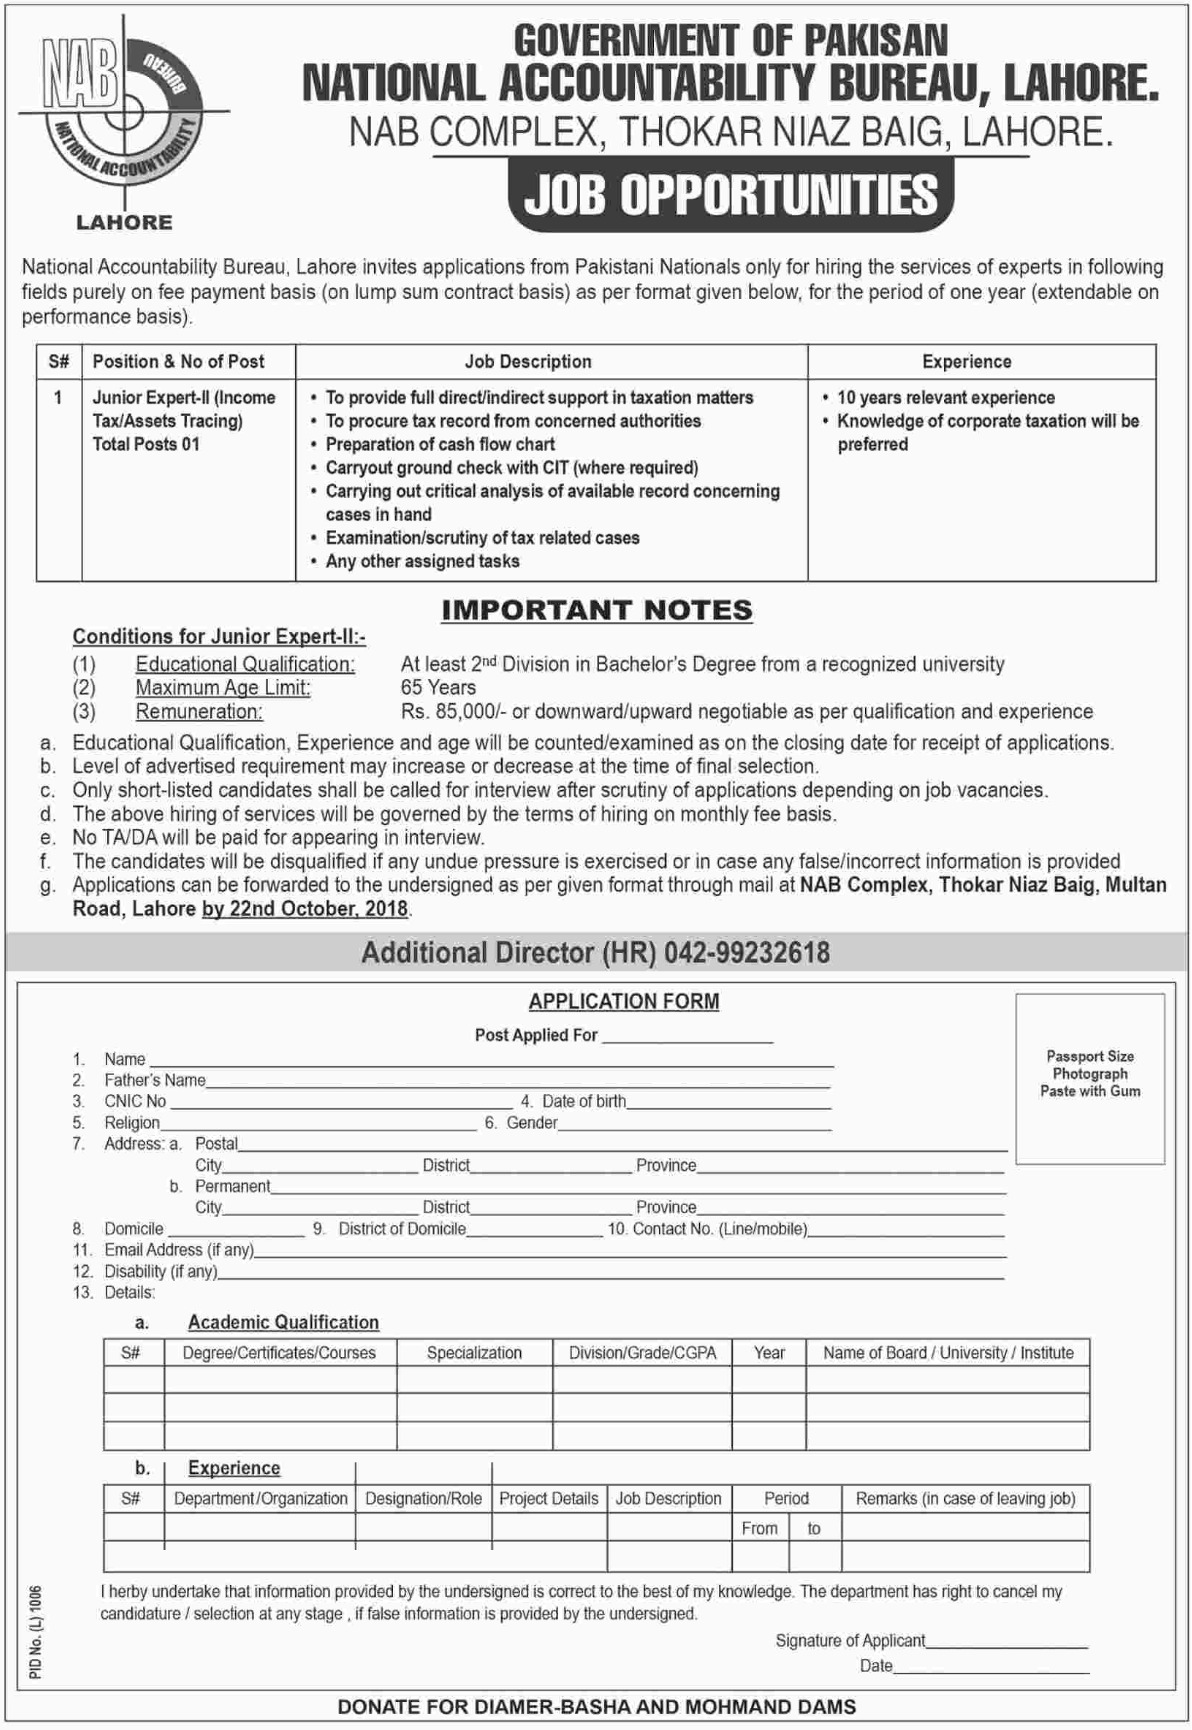 National Accountability Bureau NAB Lahore Govt of Pakistan Jobs 2018